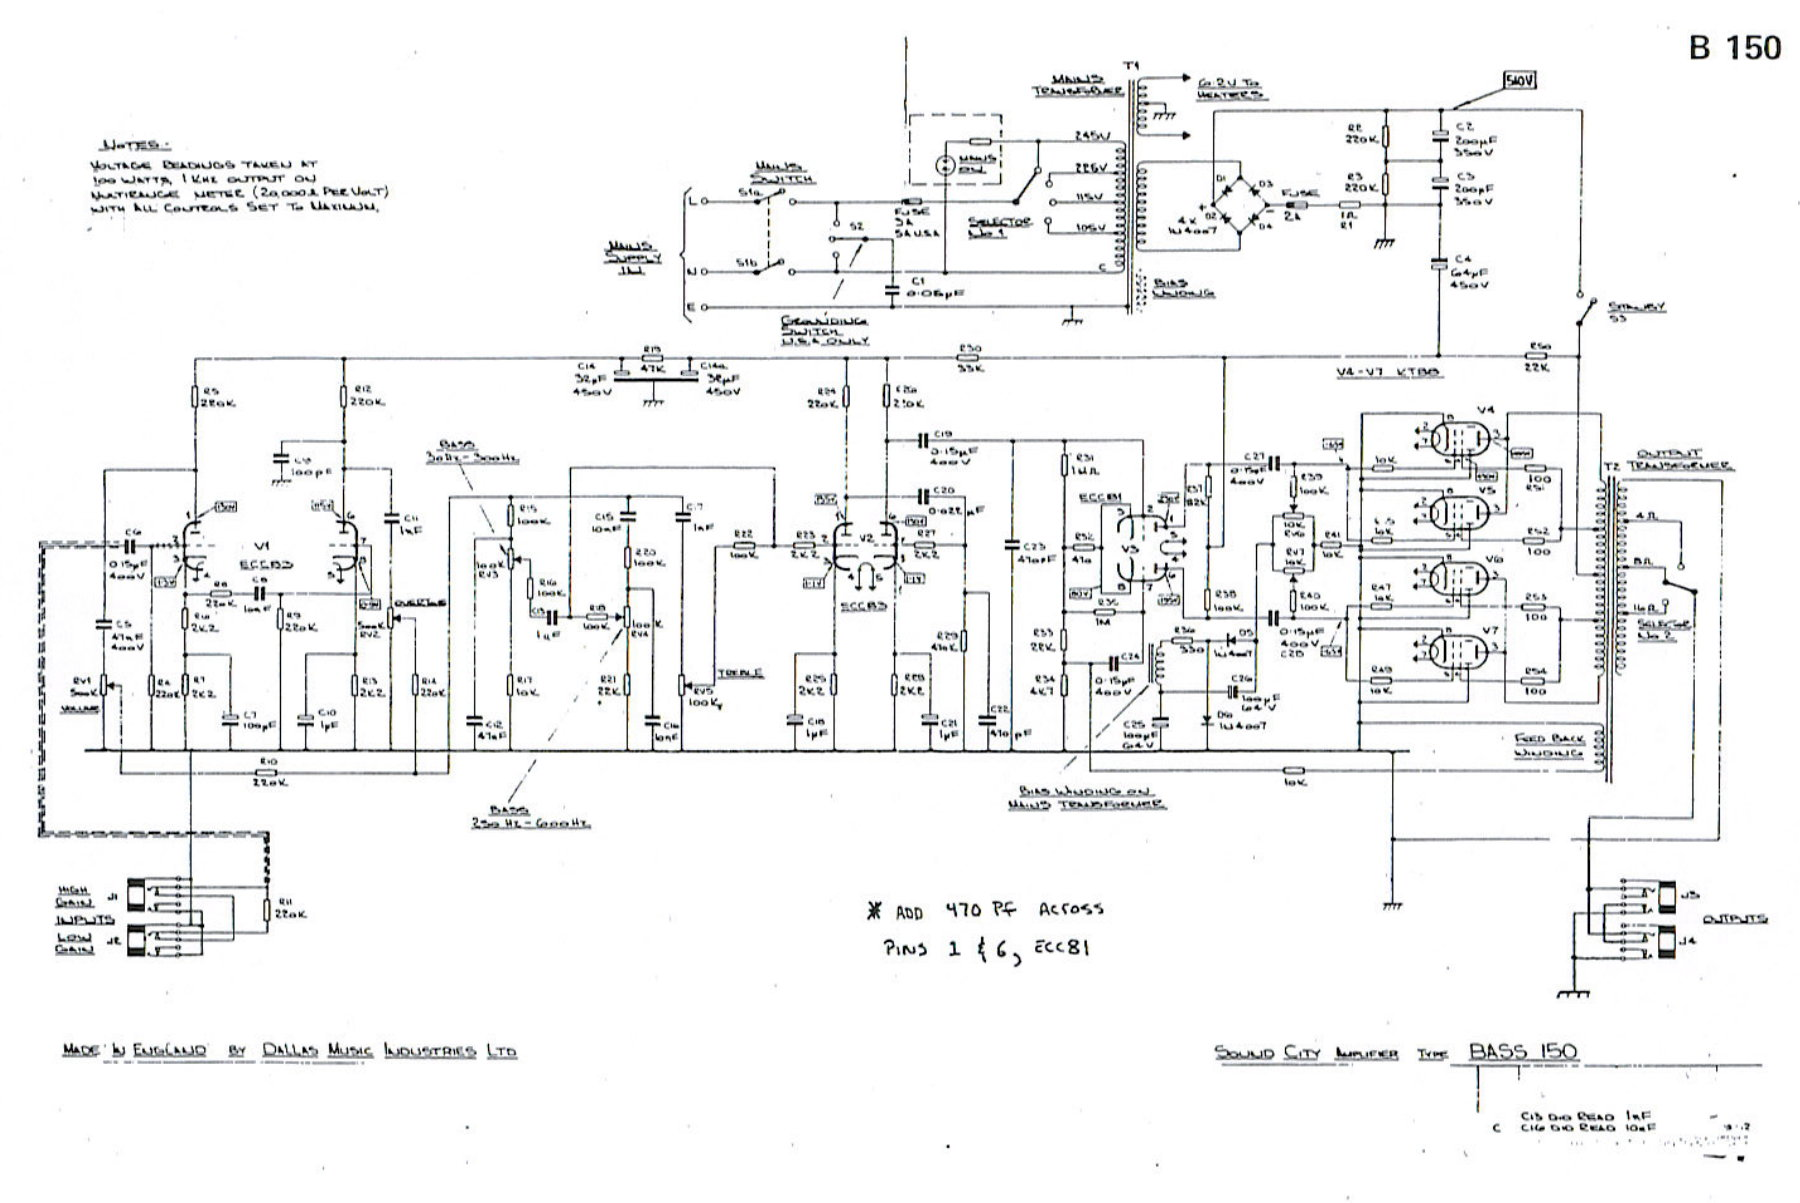 coustic amp wiring diagram sound city 150 bass  sound city 150 bass